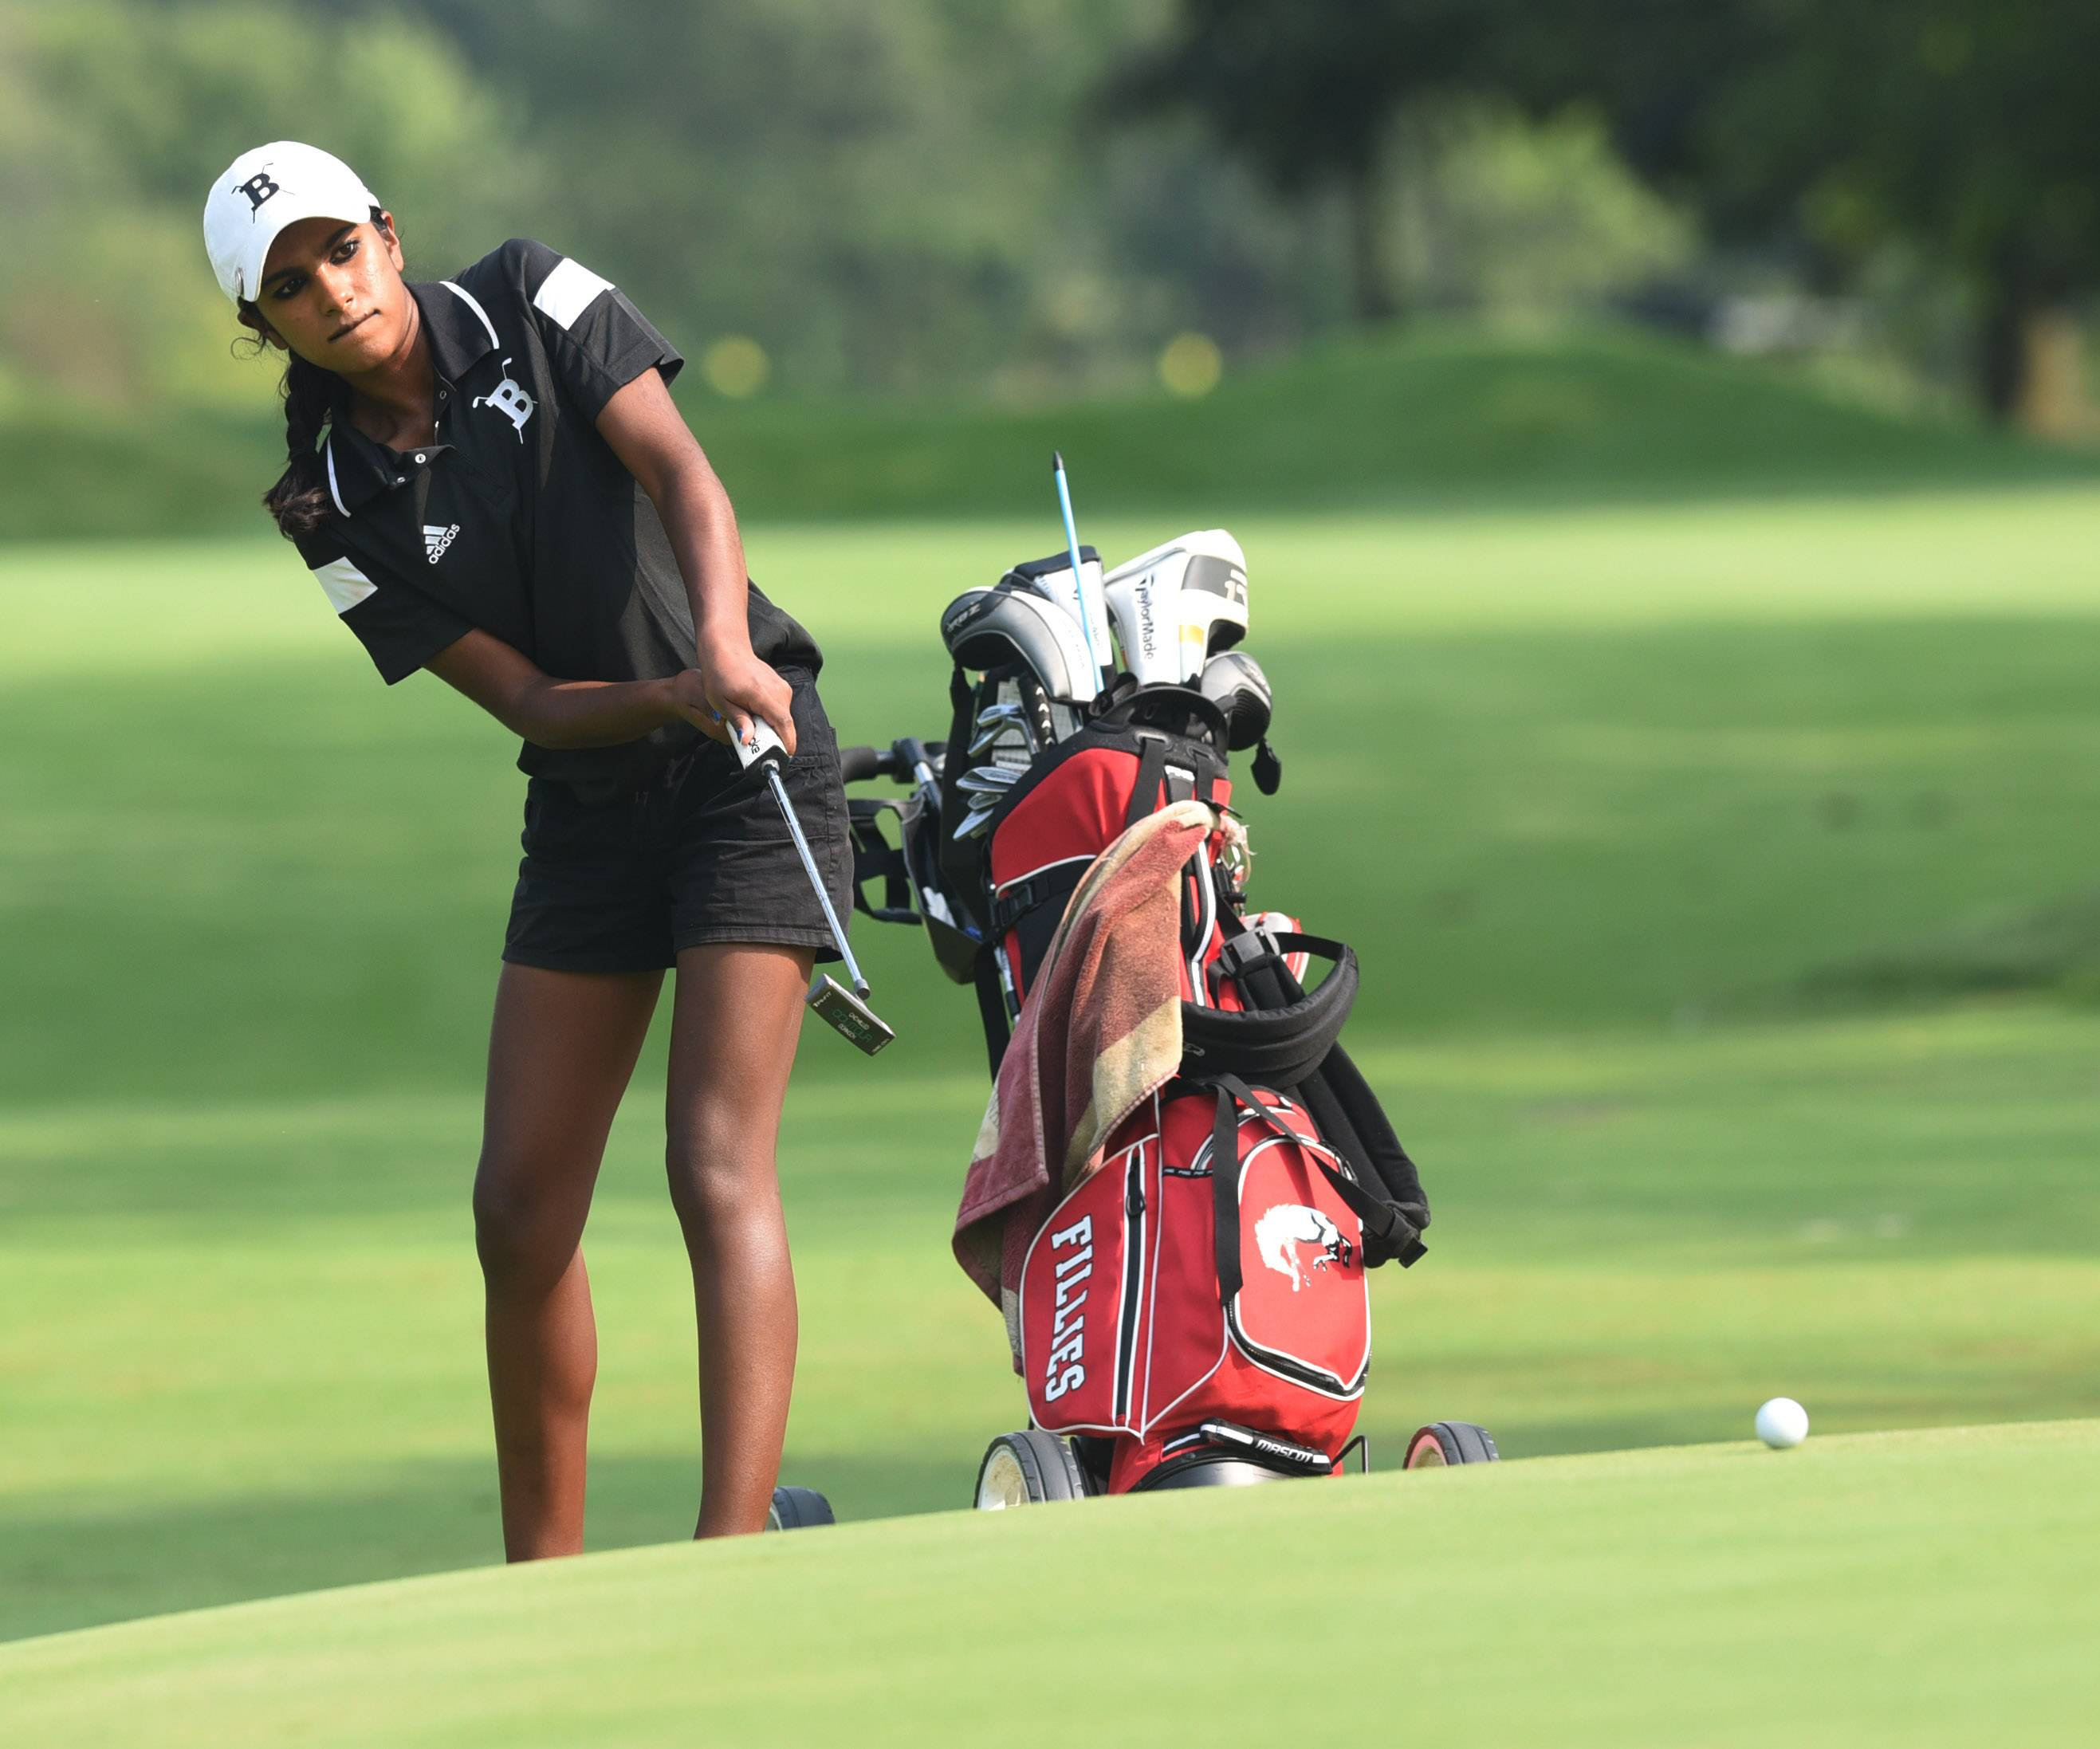 Barrington's Reena Sulkar putts while during competition with Prospect and Palatine at the Mount Prospect Golf Club on Thursday.